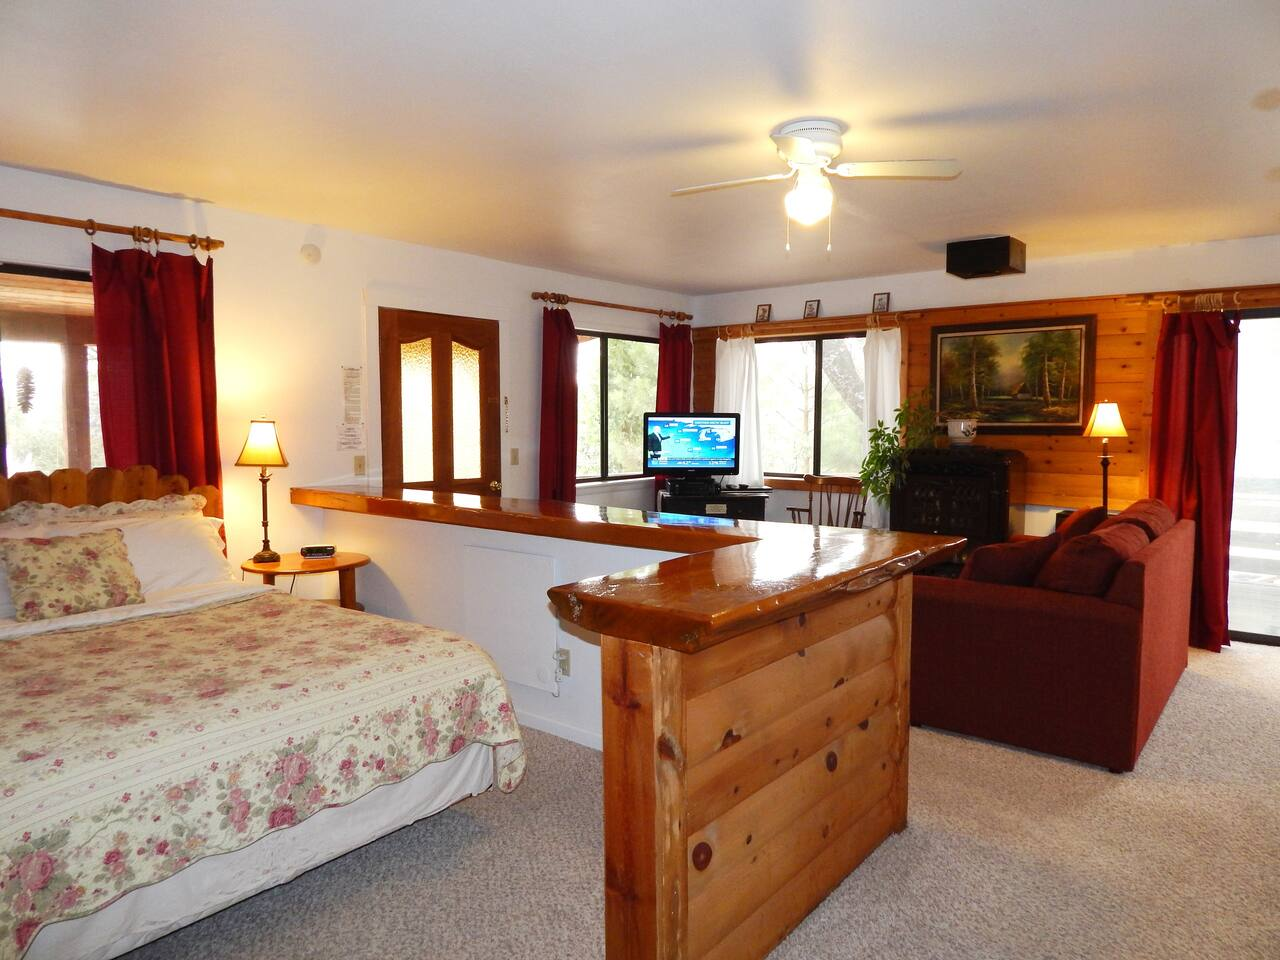 Studio suite with queen bed & sofa bed. Lots of natural light & privacy!